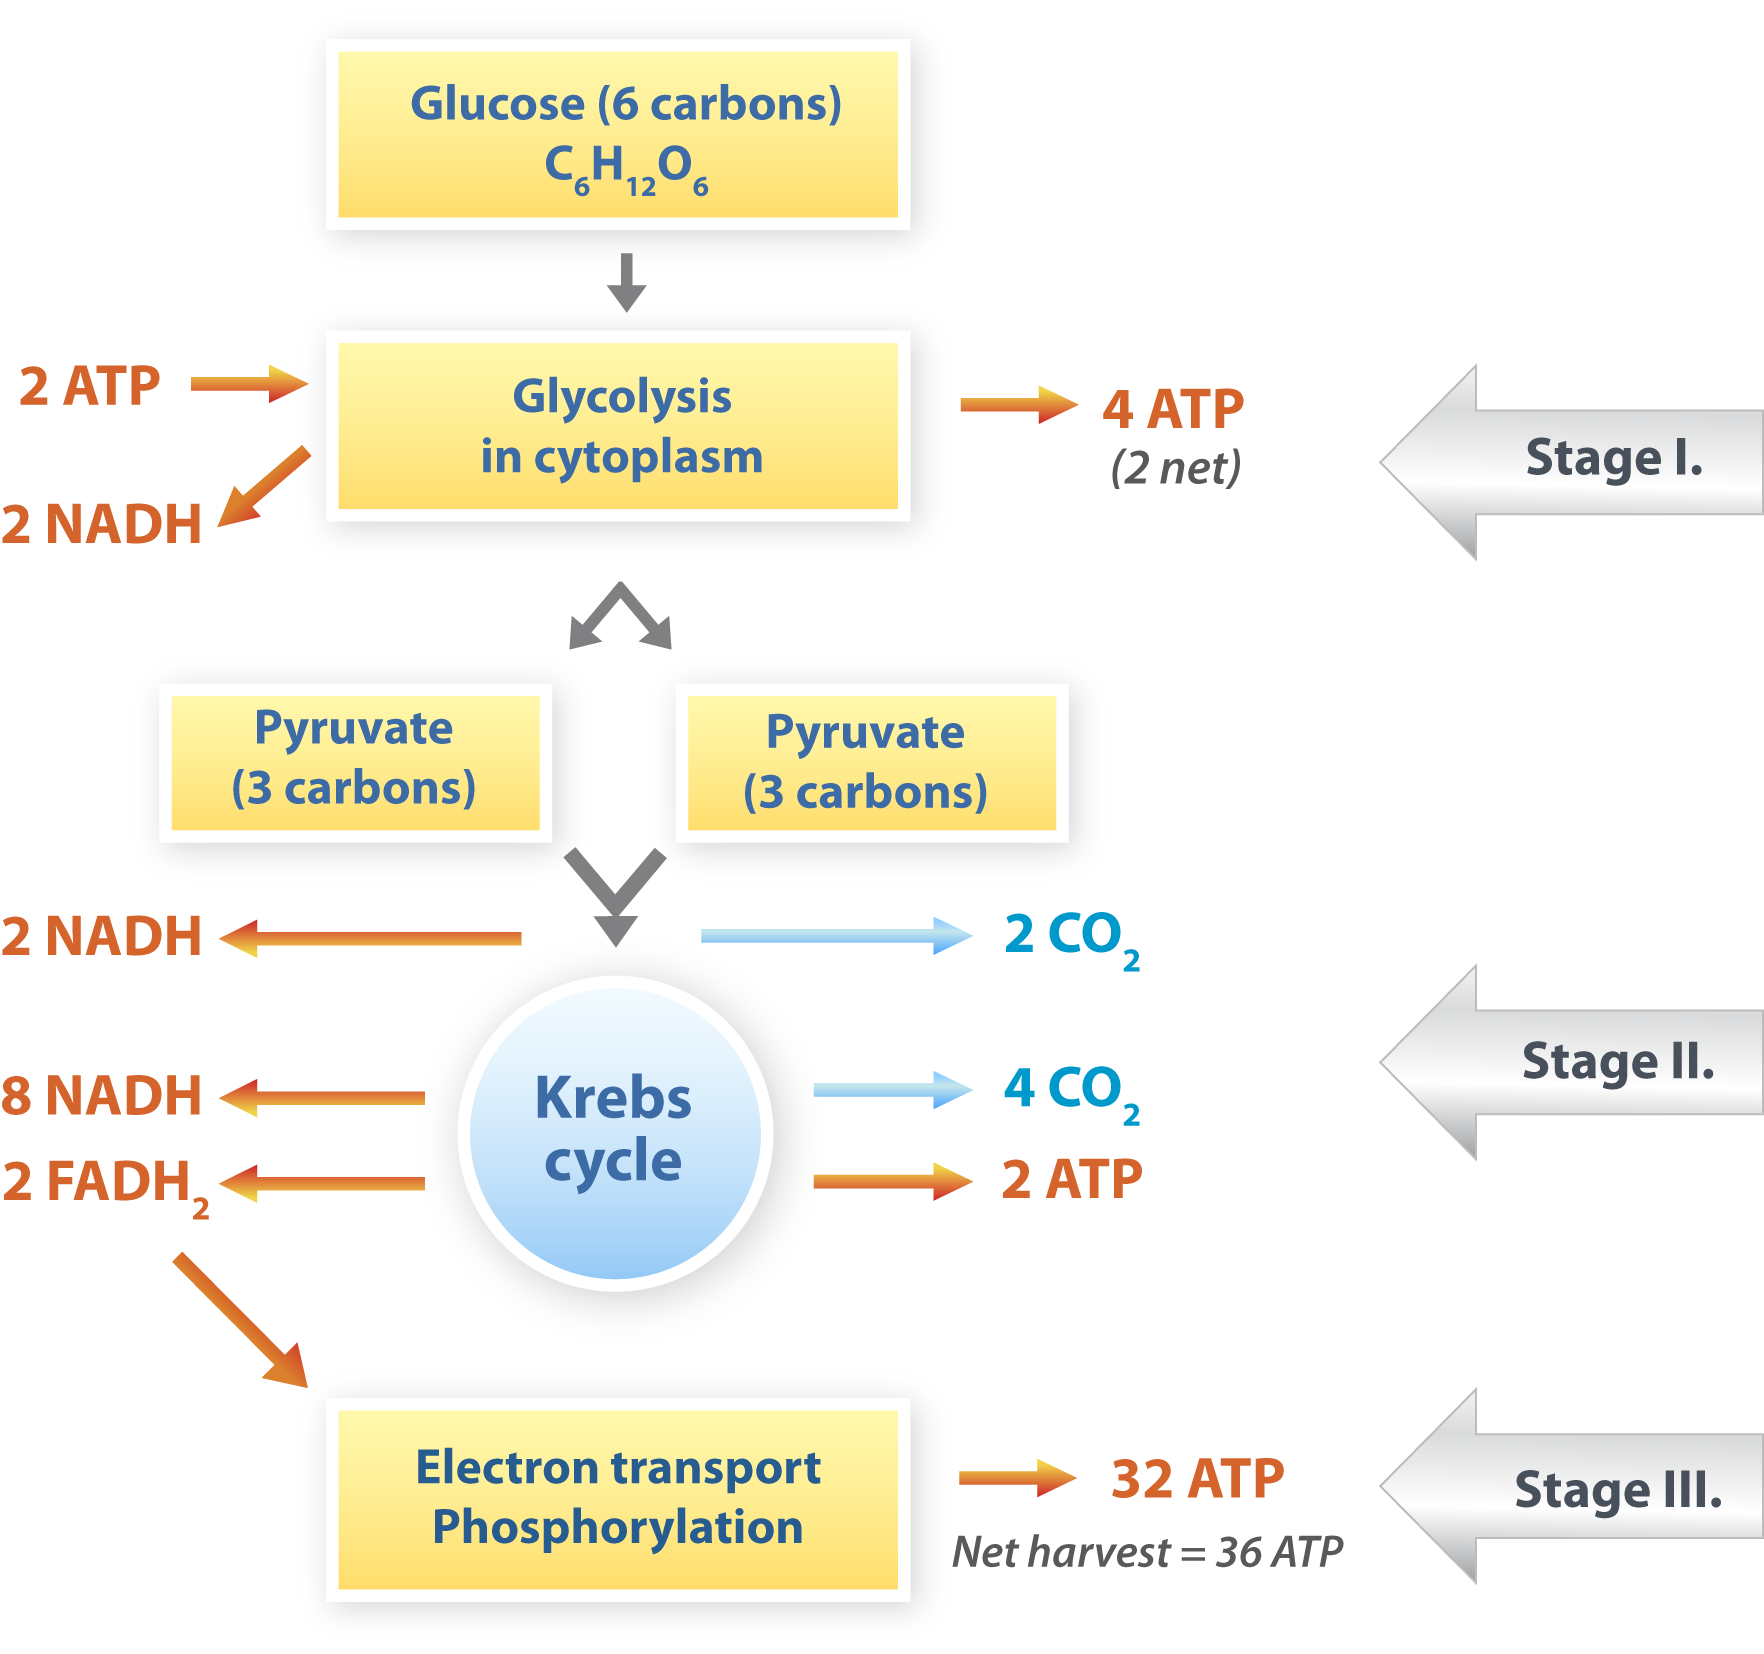 Cellular Respiration The Process By Which The Chemical Energy Of Food Molecules Is Released